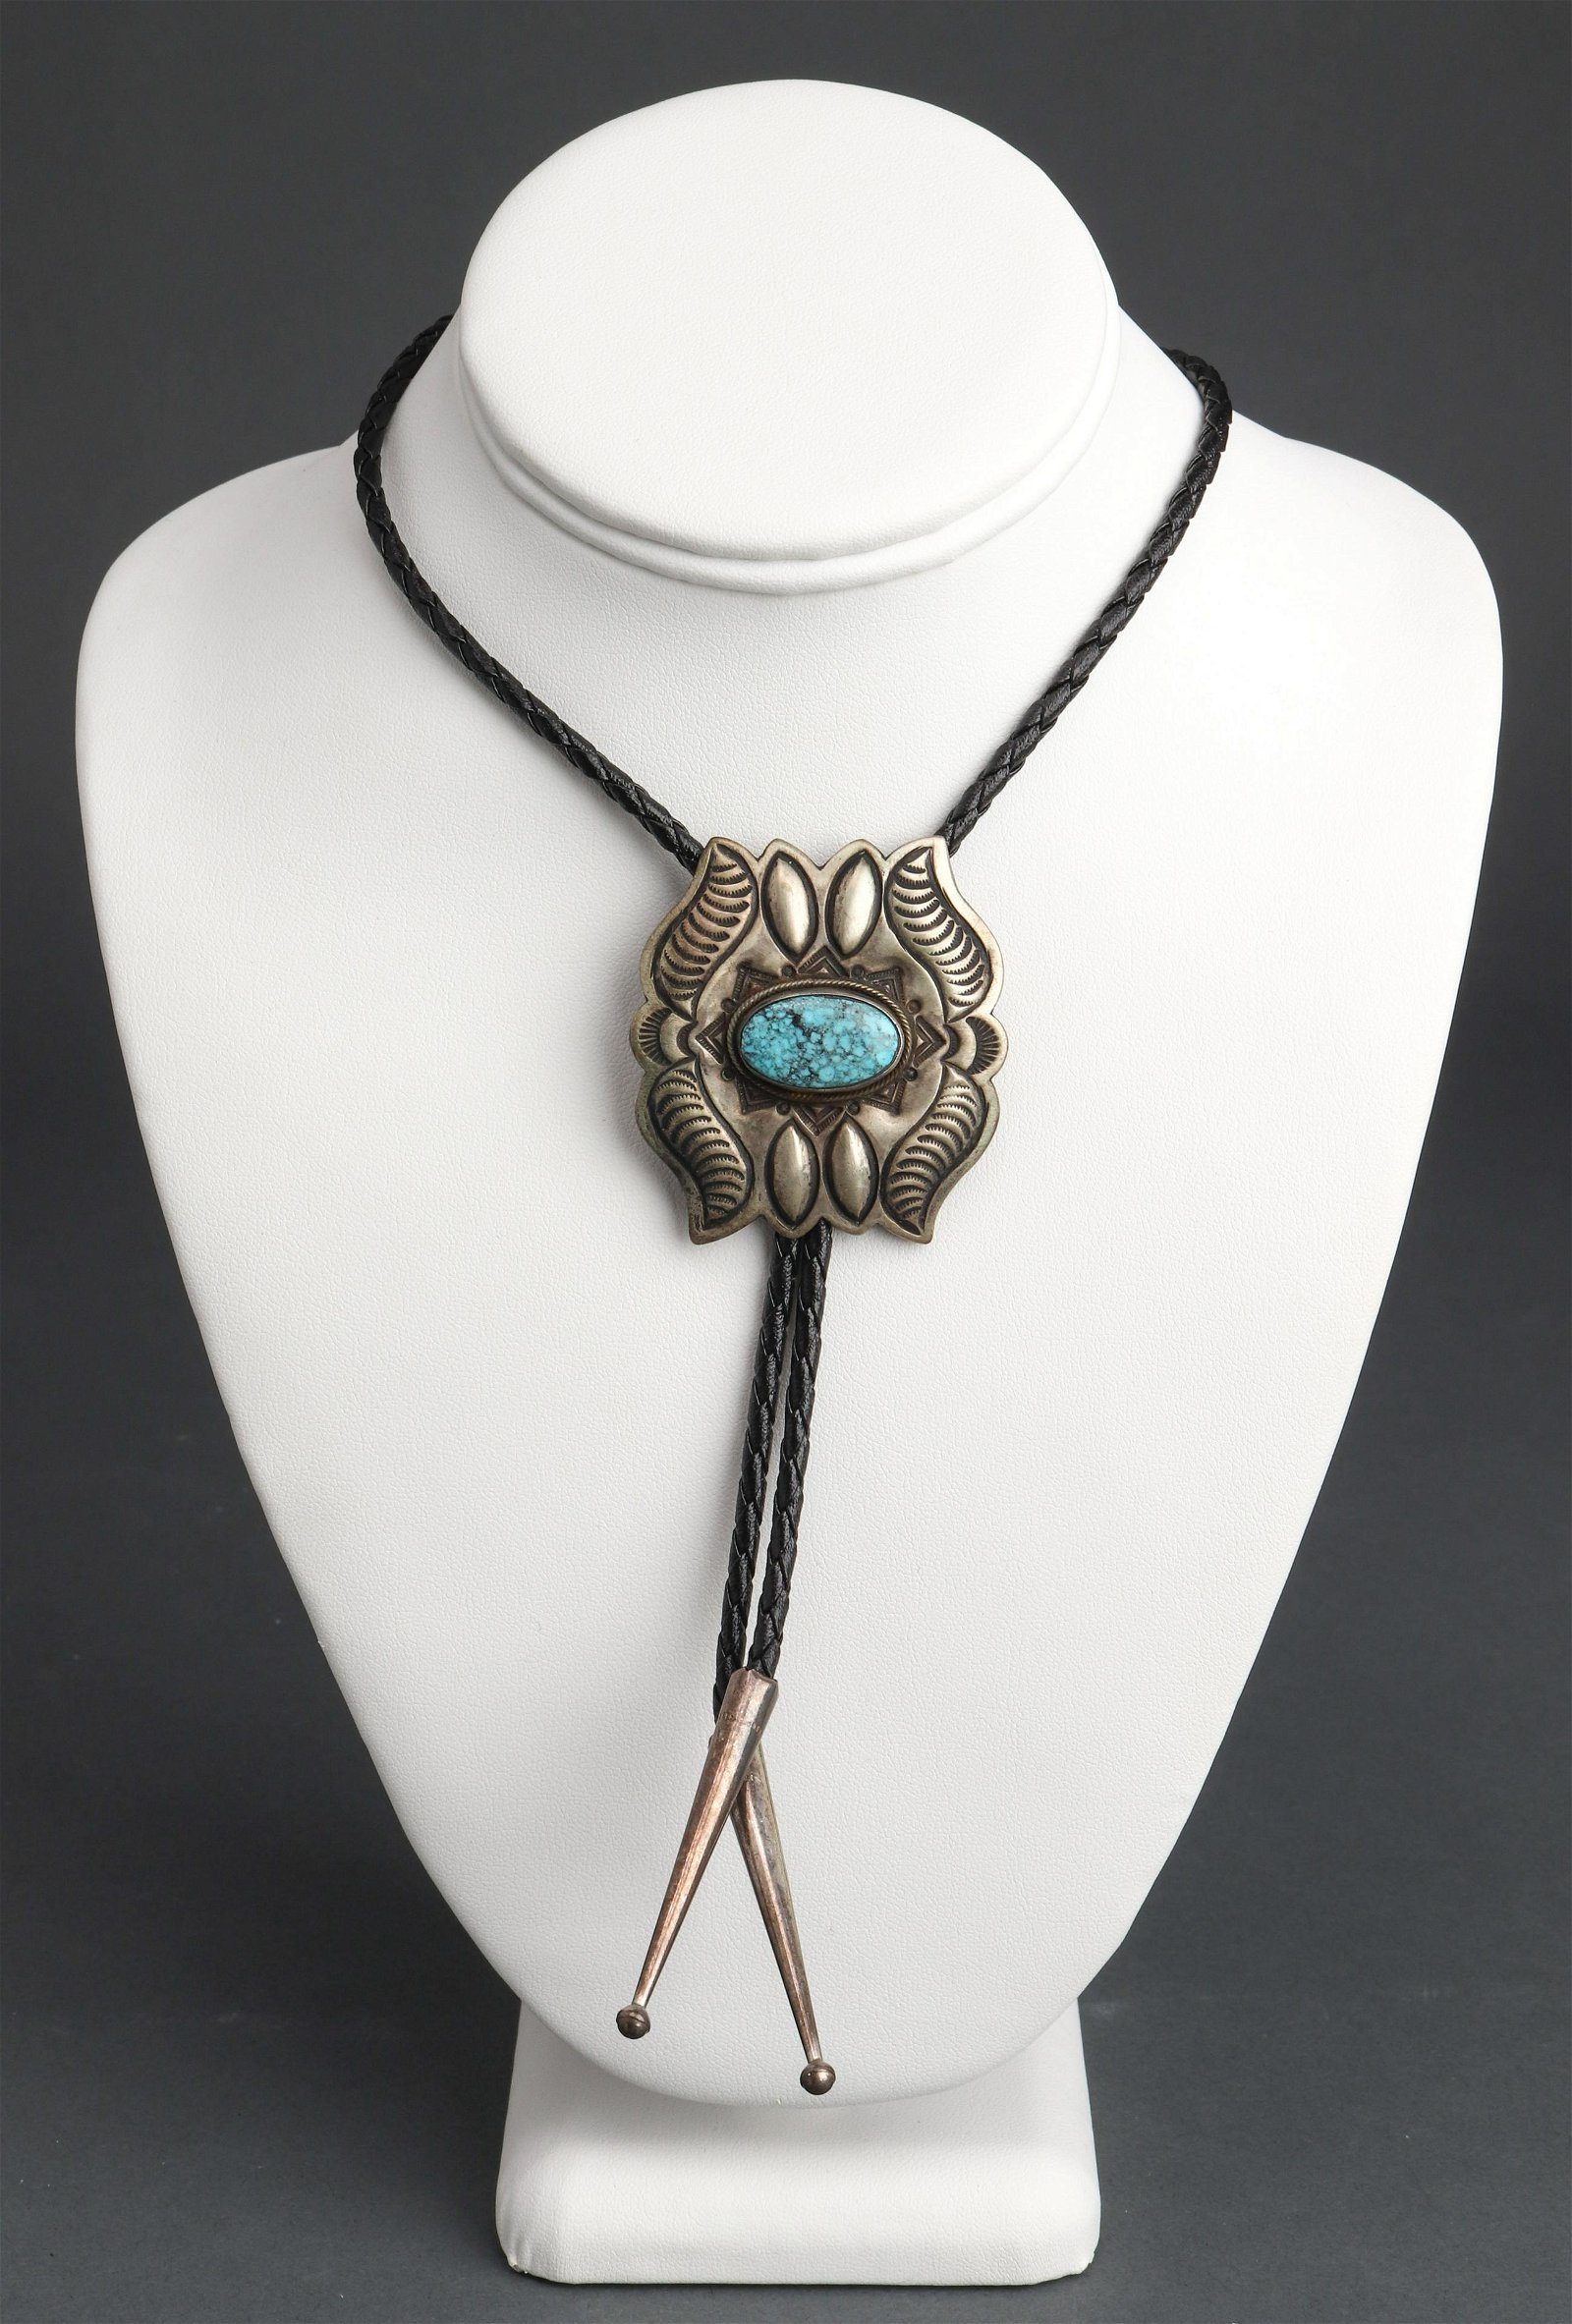 Navajo Silver & Turquoise Leather Lariat Necklace